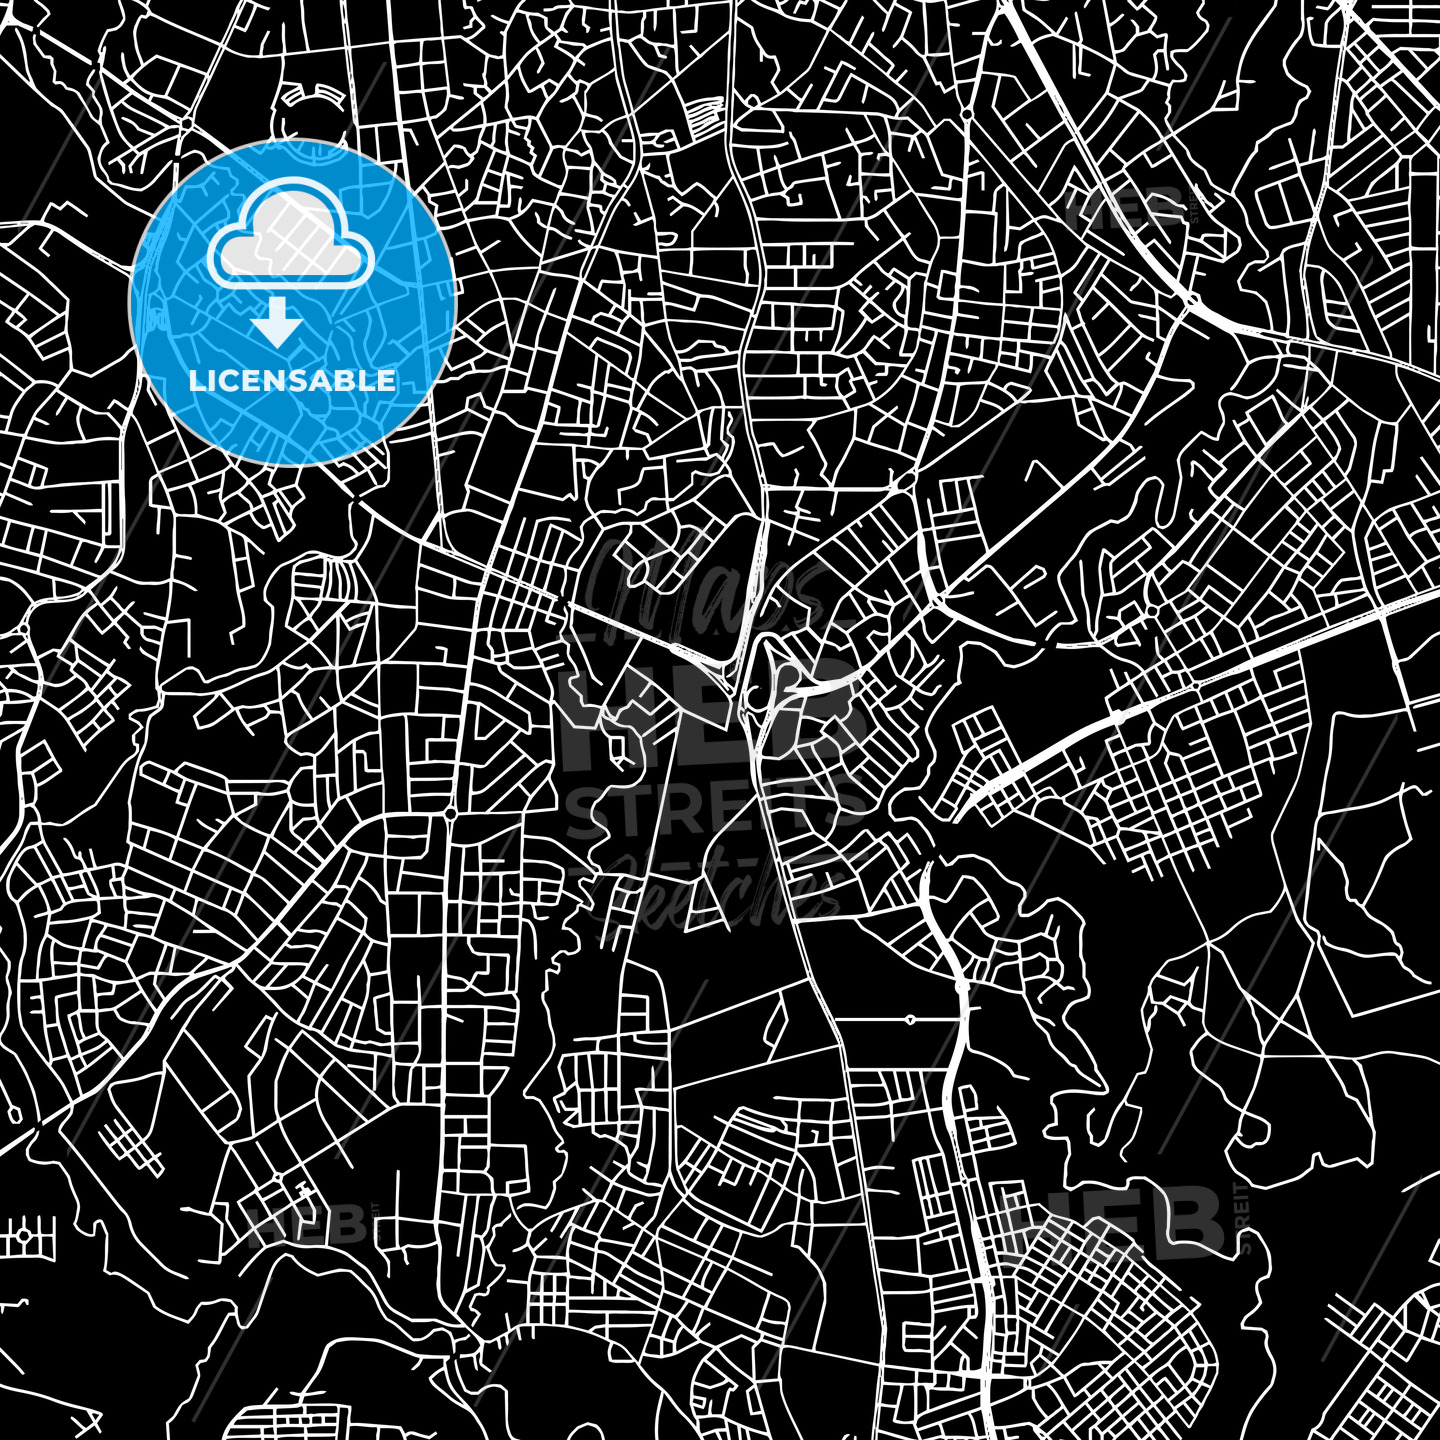 Addis Ababa, Ethiopia, downtown map, dark | HEBSTREITS